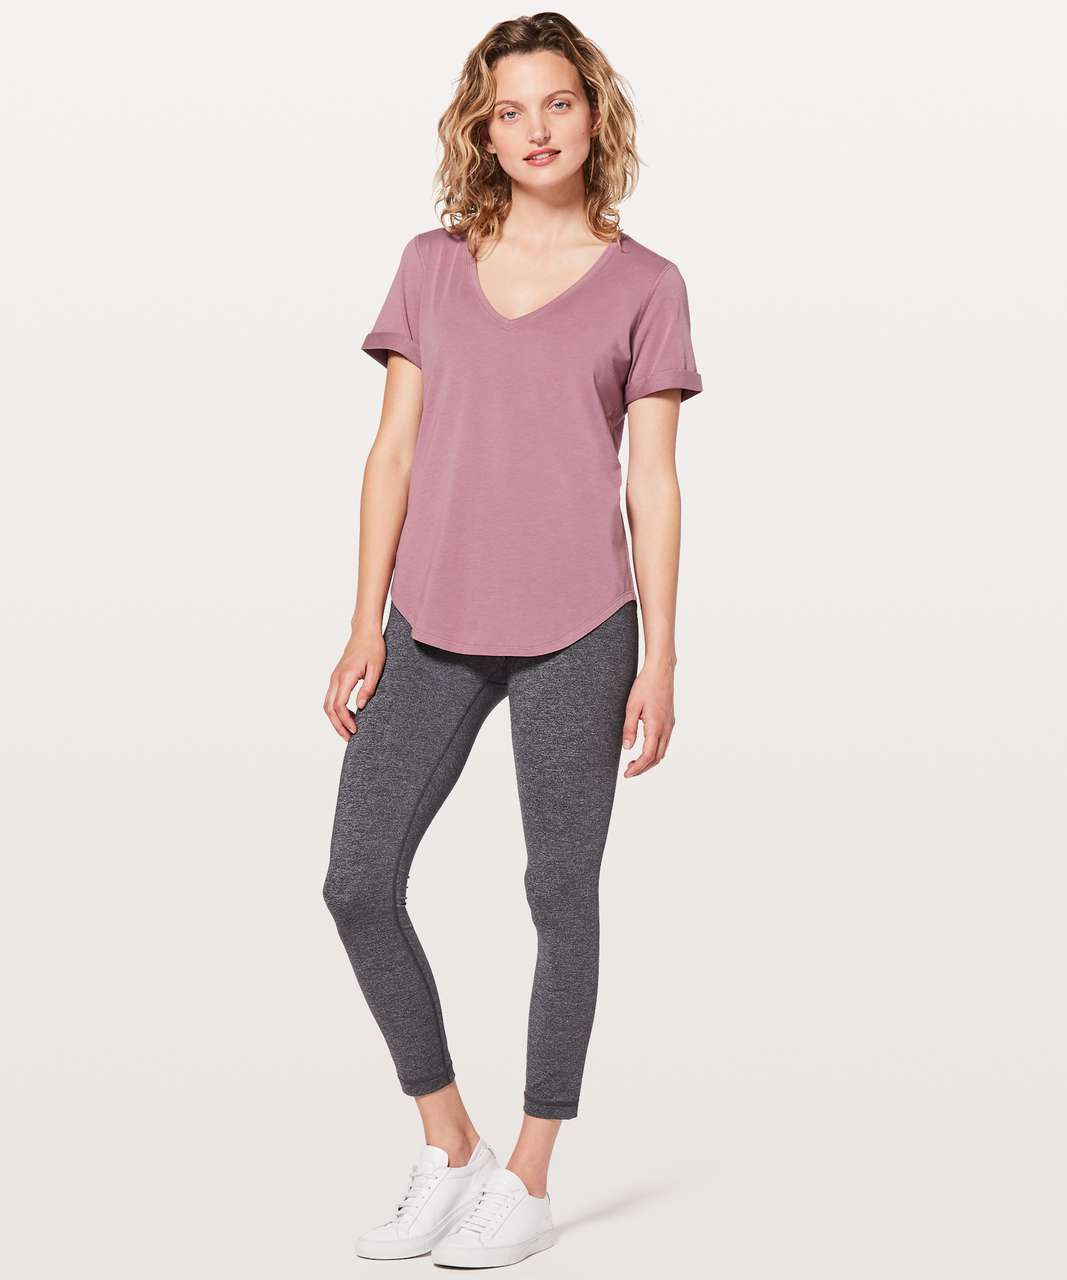 Lululemon Love Tee II - Figue